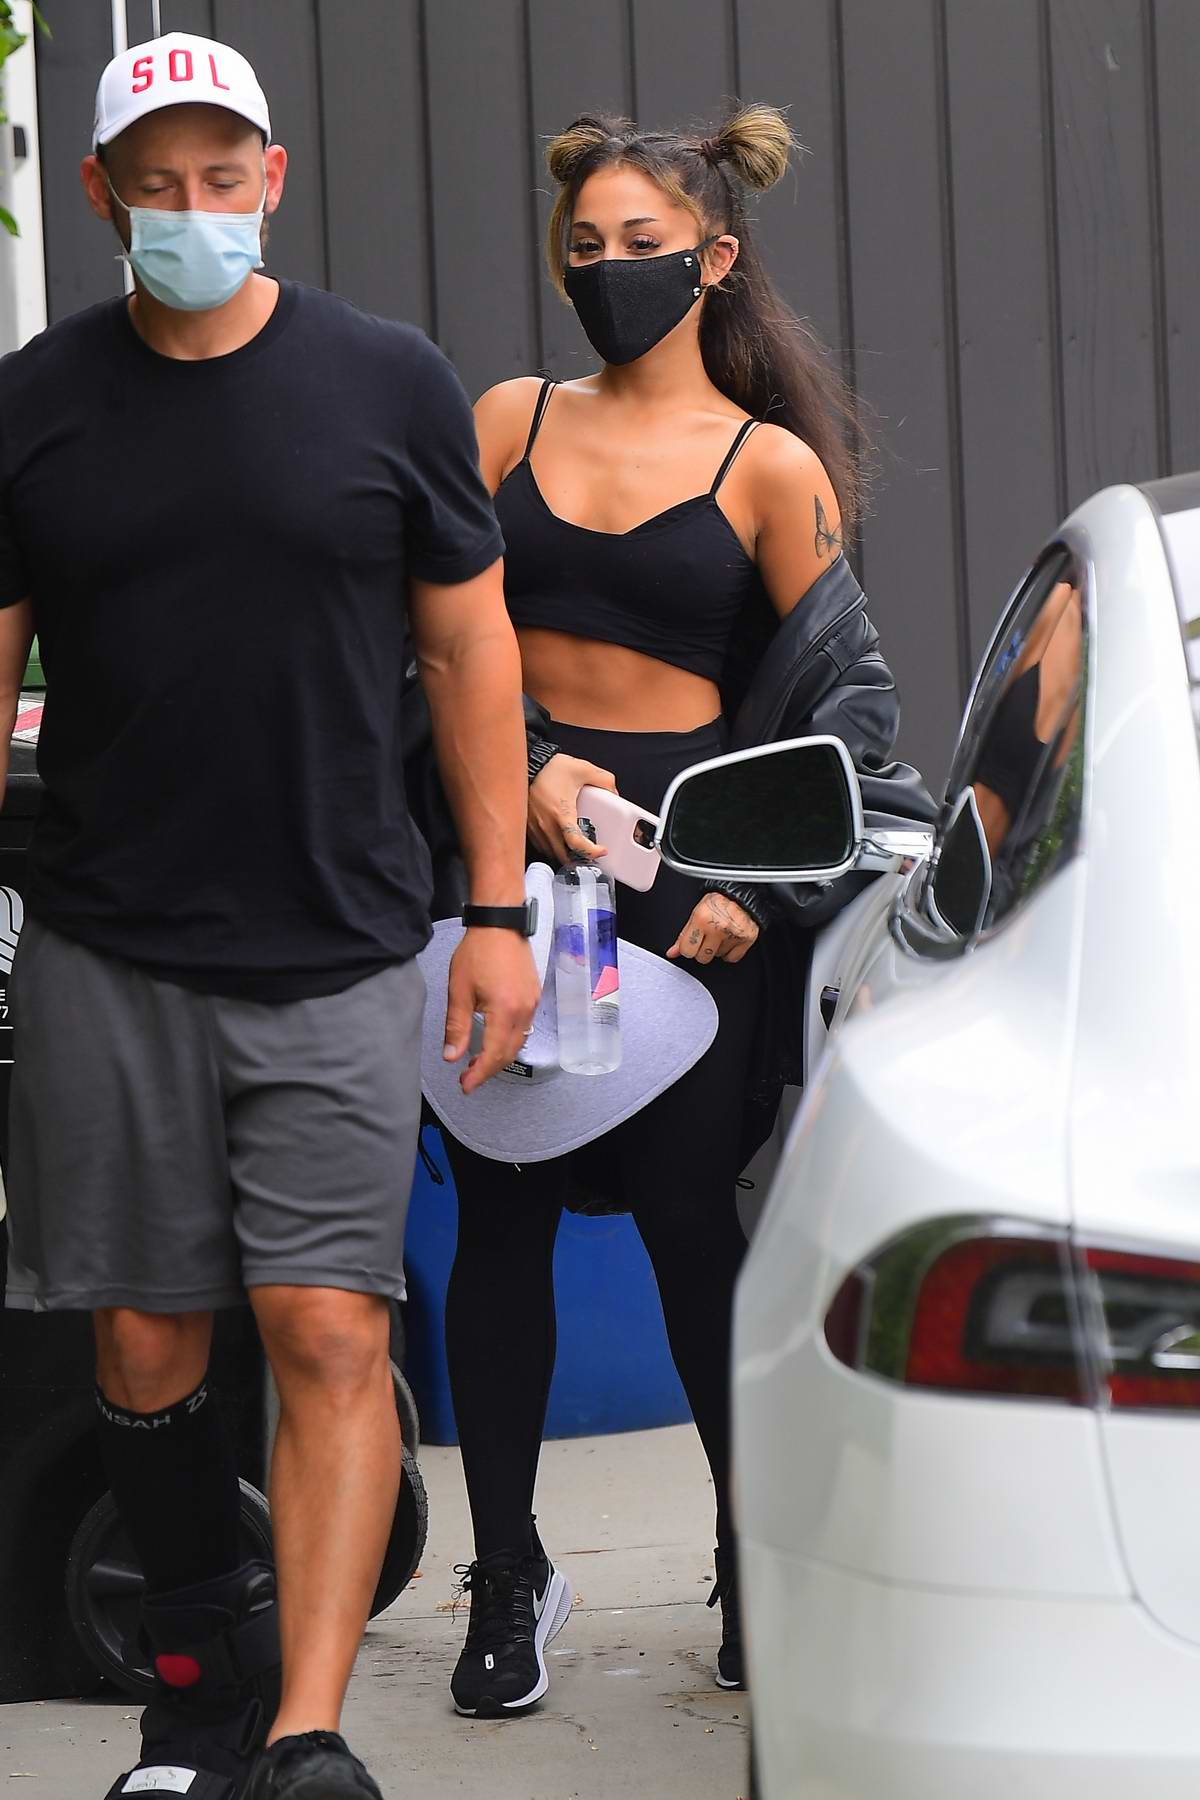 Ariana Grance shows off her fit figure in a crop top and leggings as she leaves the gym in Los Angeles